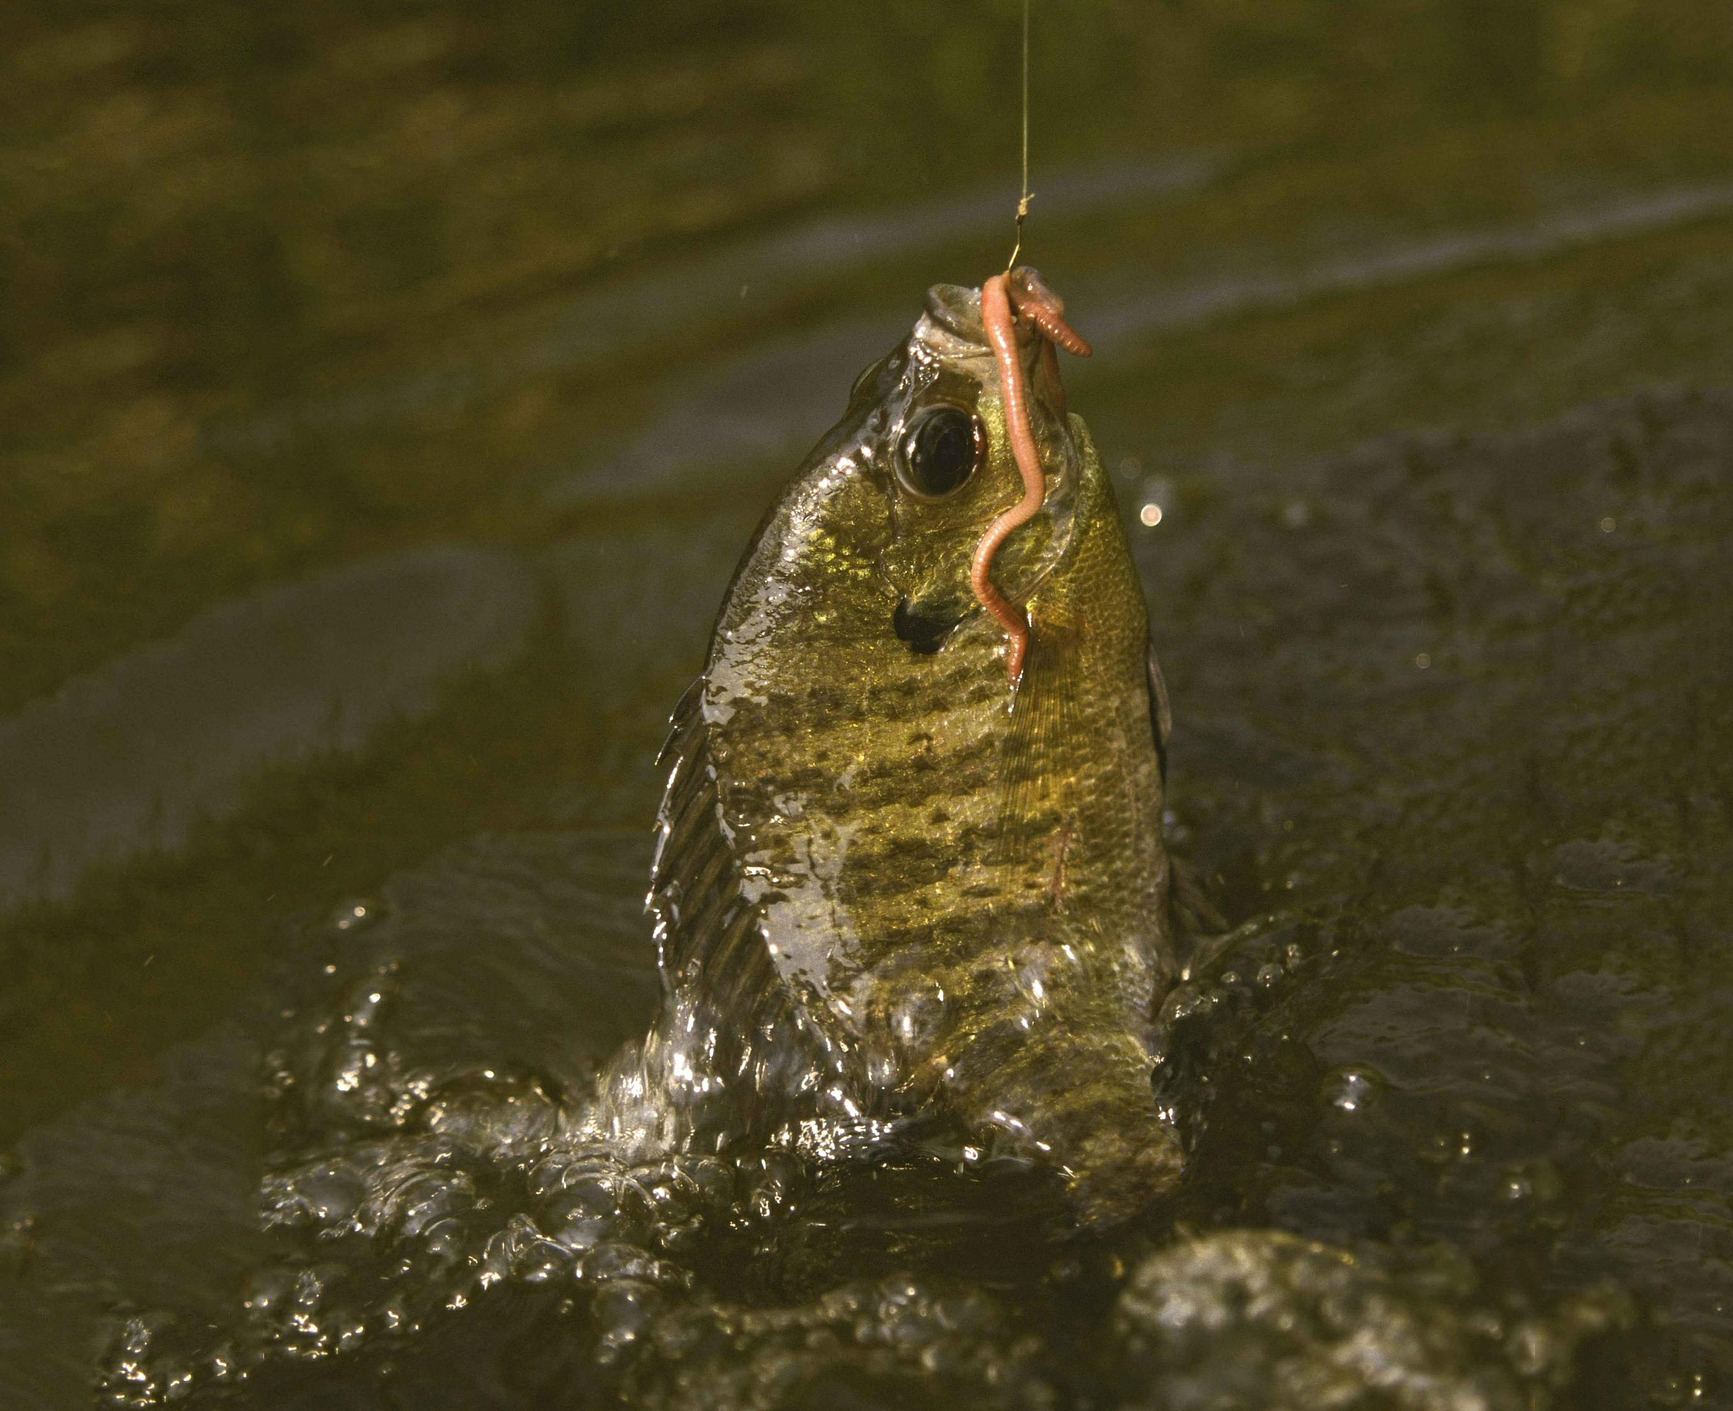 A bluegill bits on a line after a worm.